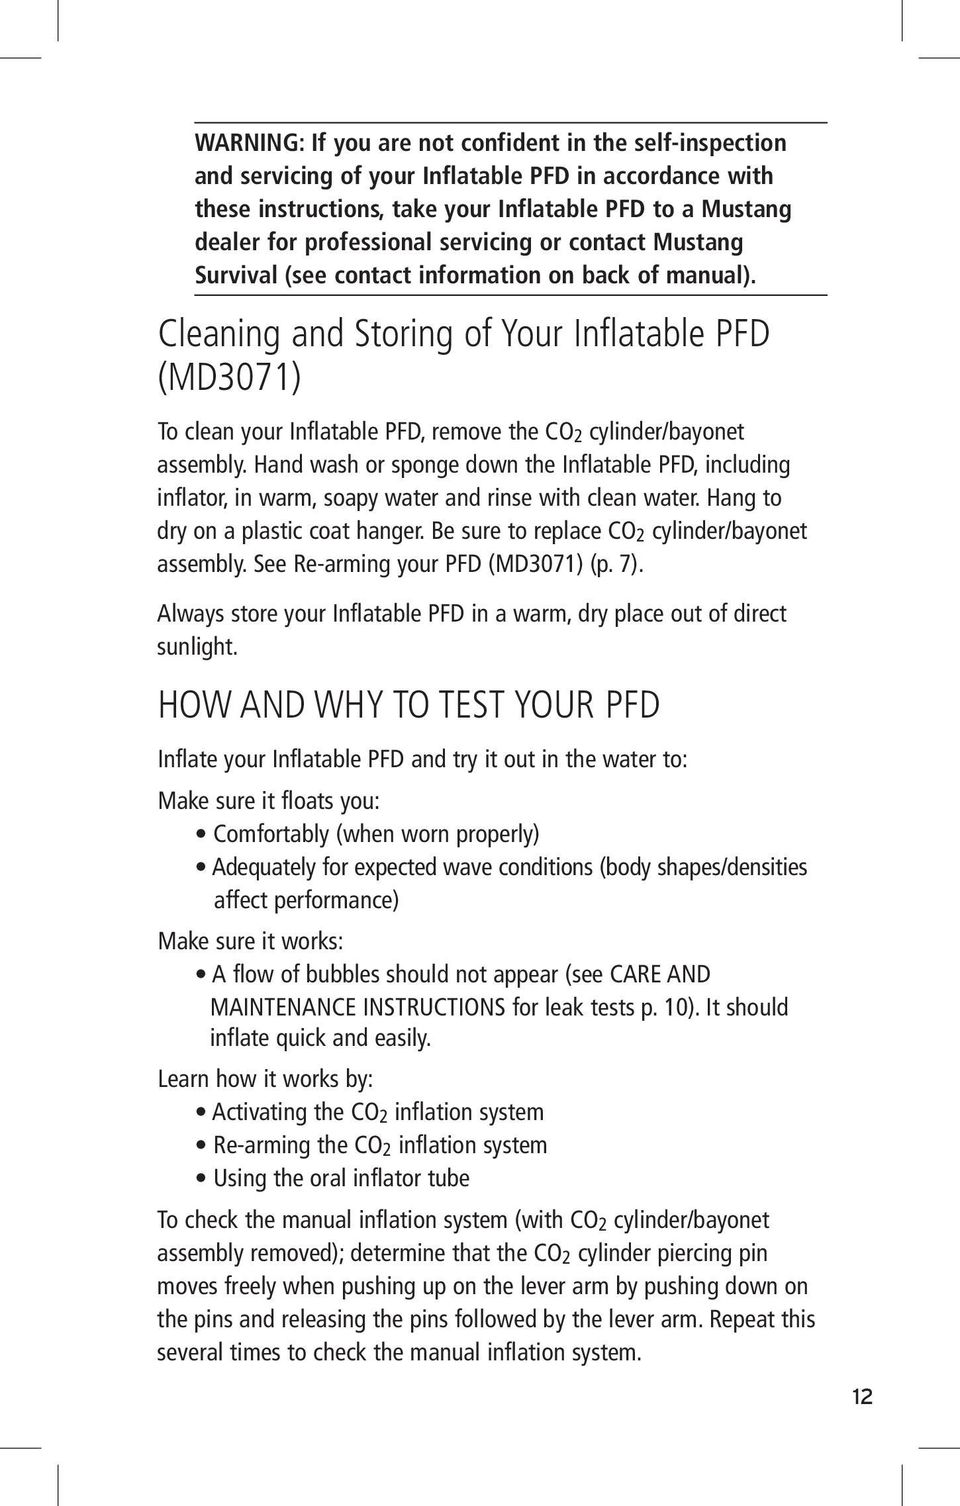 Cleaning and Storing of Your Inflatable PFD (MD3071) To clean your Inflatable PFD, remove the CO 2 cylinder/bayonet assembly.